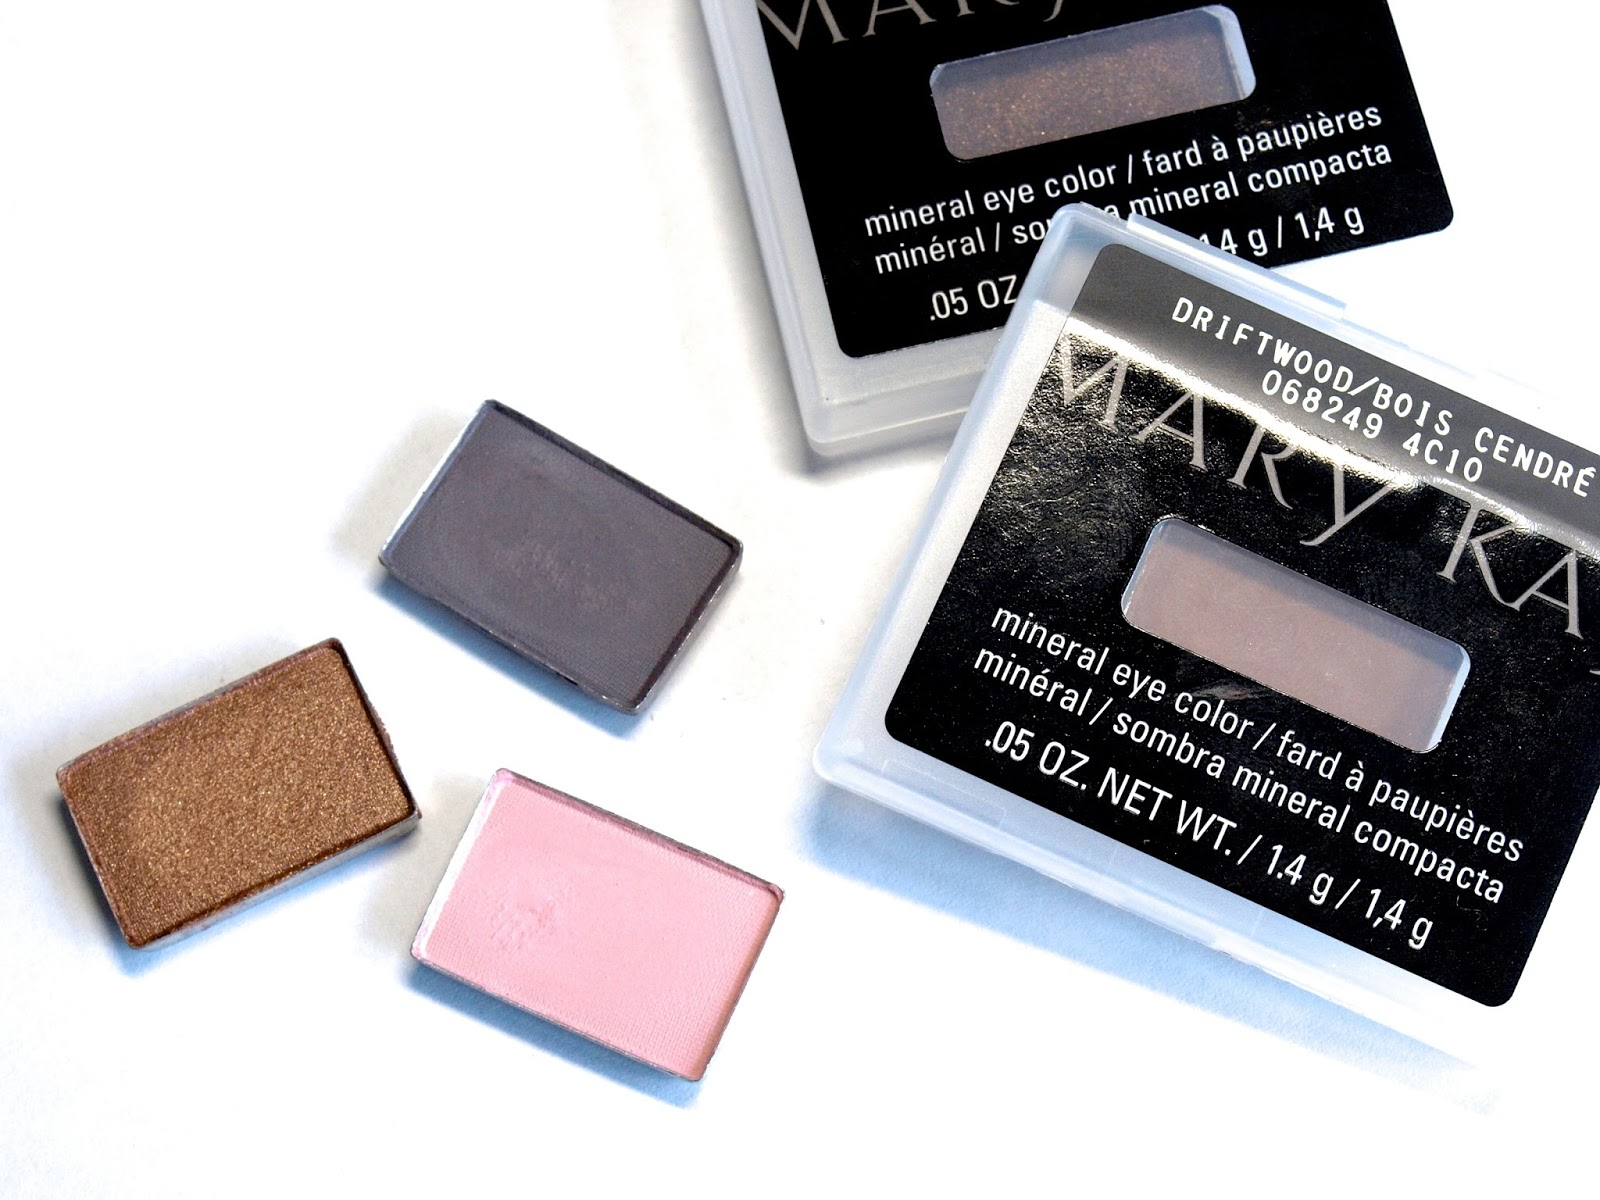 mary kay mineral eye color eye shadow review swatches stone ballerina pink french toast rosegold driftwood